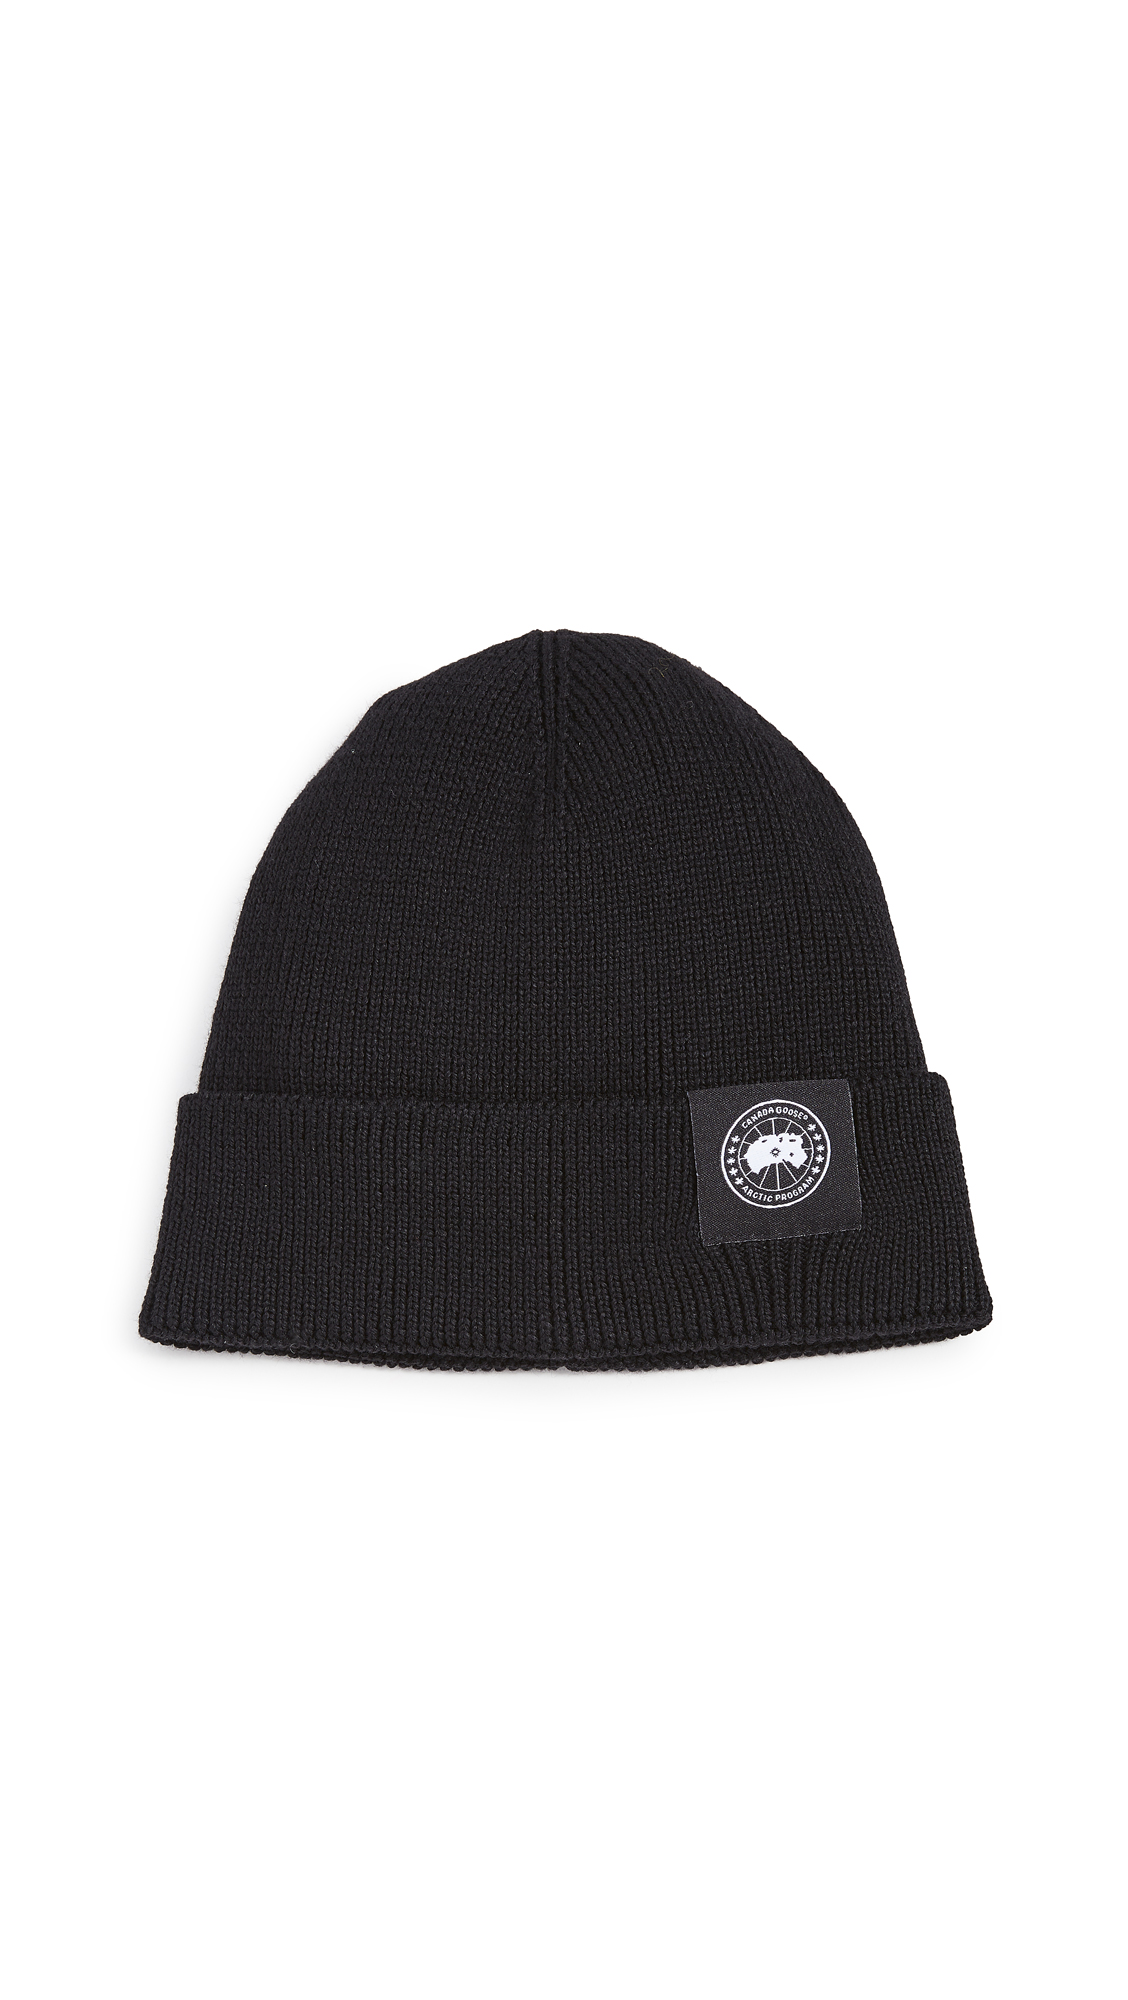 Canada Goose Lightweight Merino Watch Cap